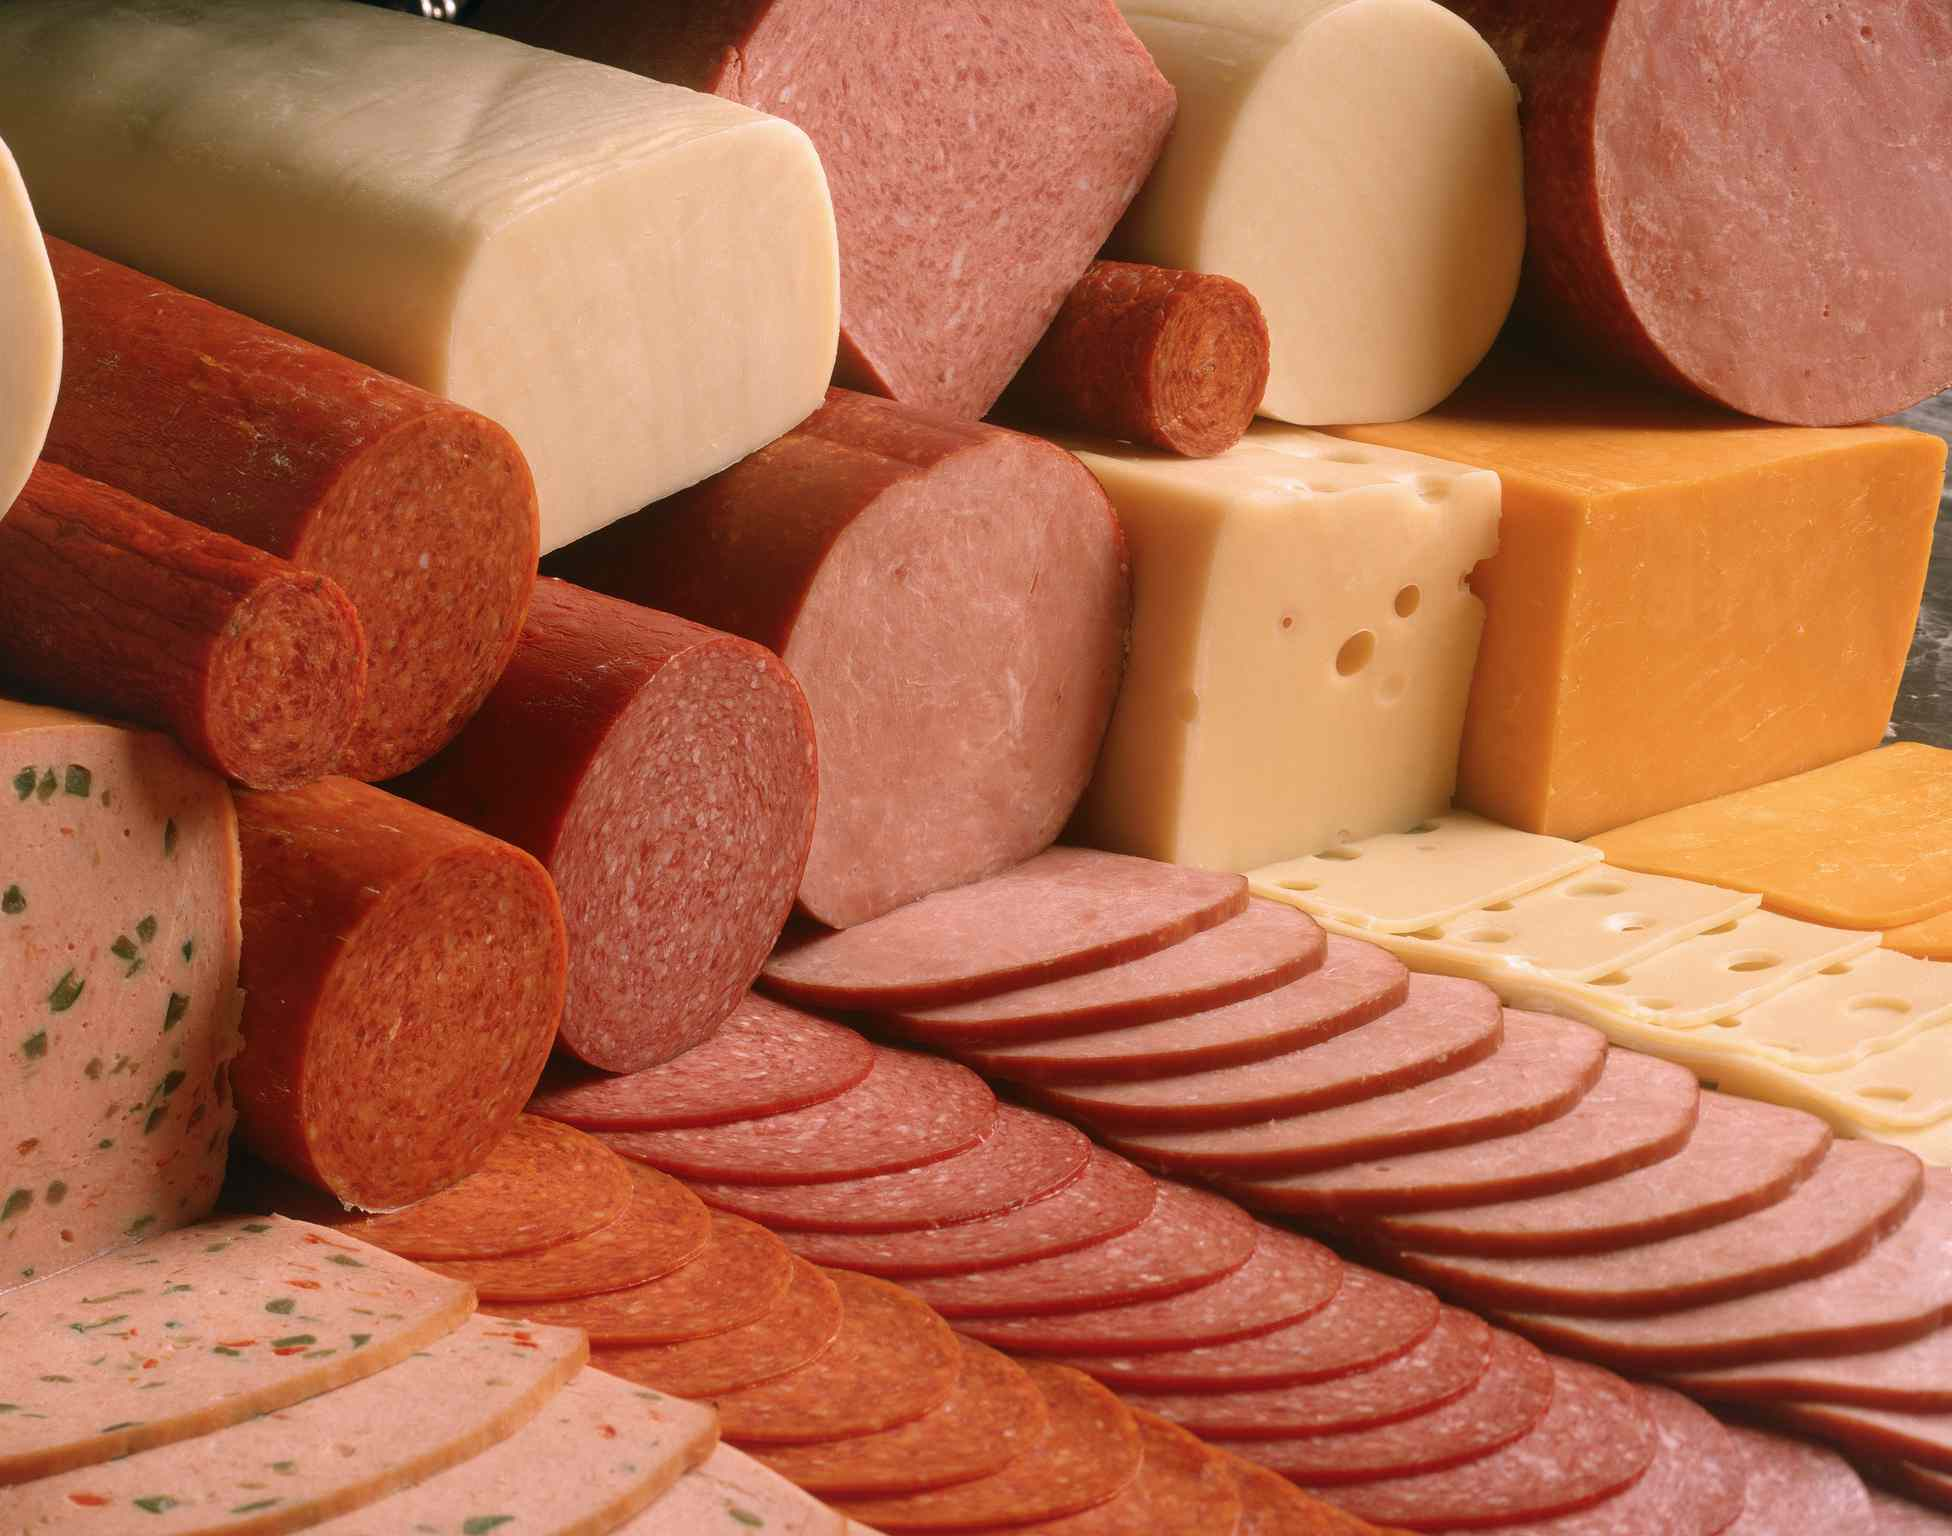 Meats and cheeses